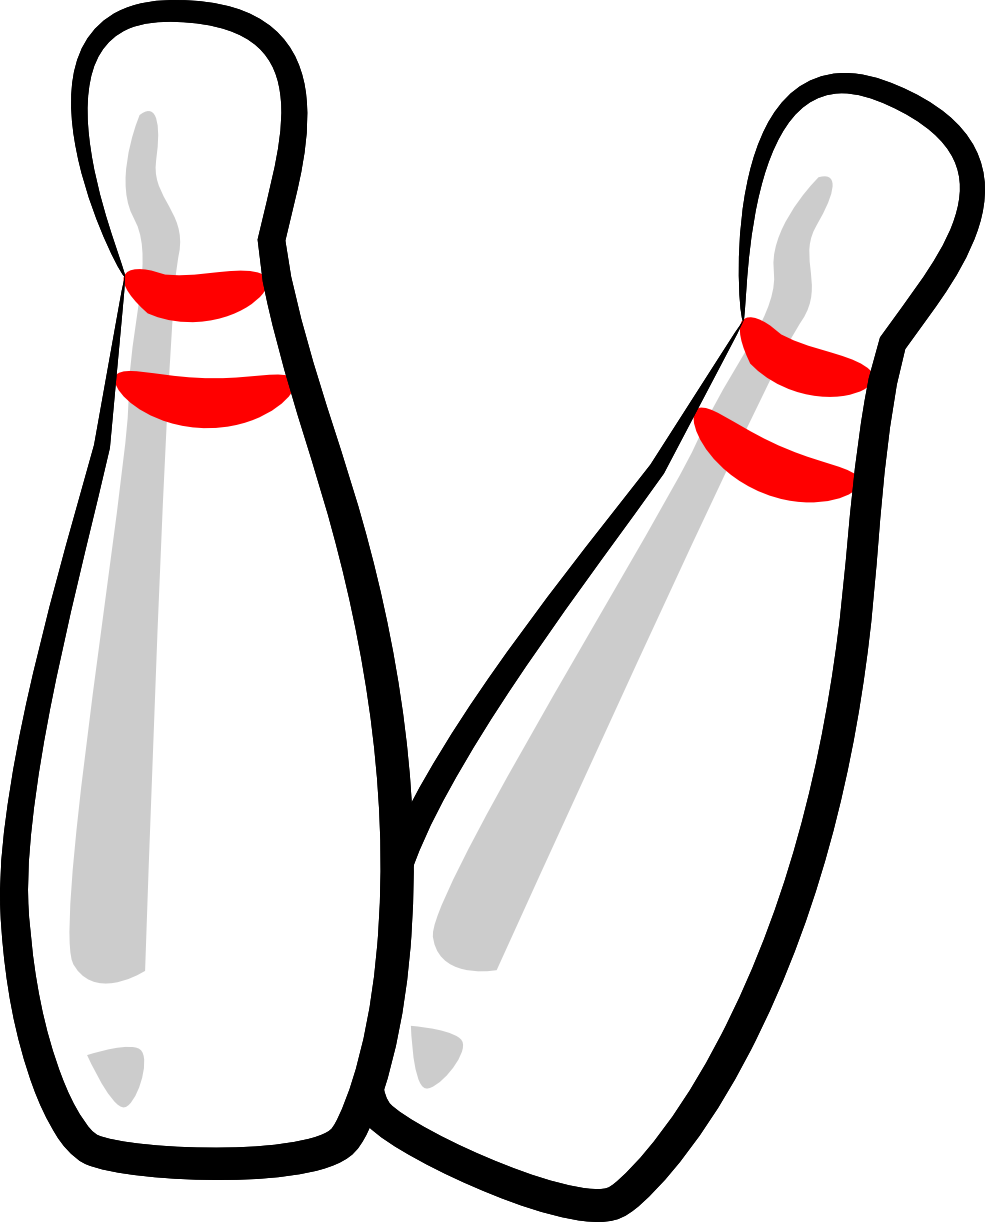 Bowling Pin Clipart - ClipArt Best